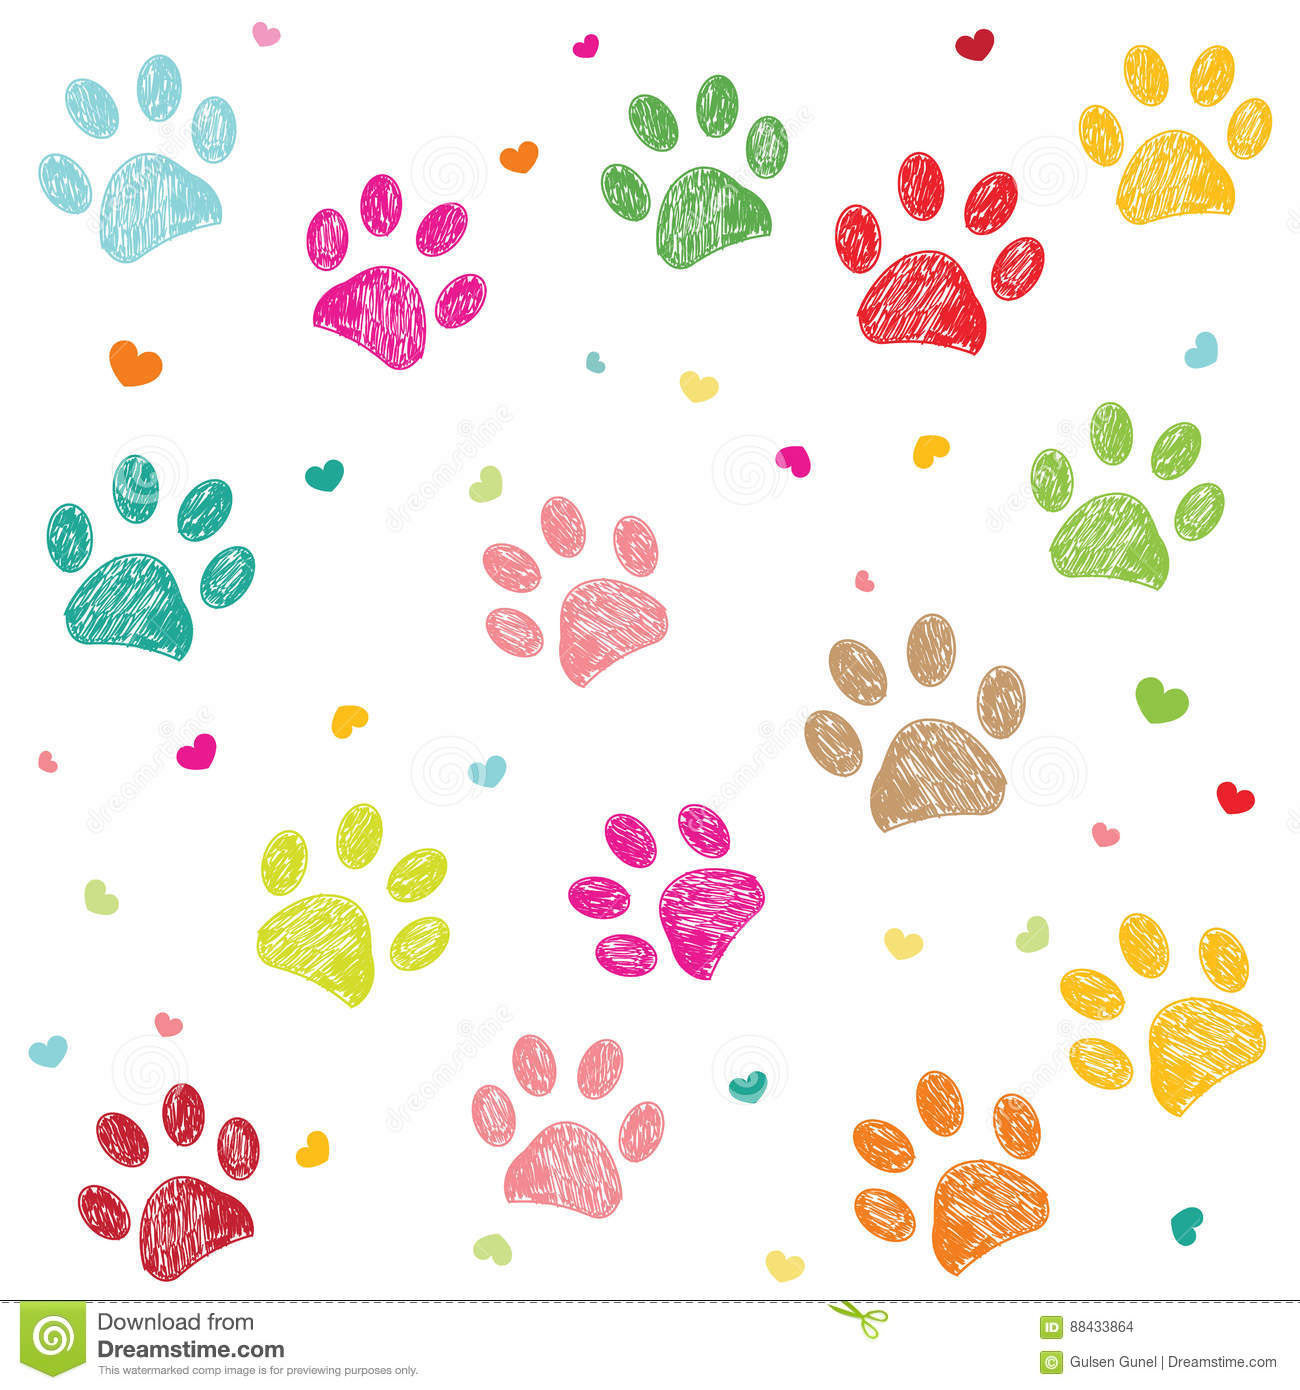 Colorful hand drawn doodle paw print with hearts vector